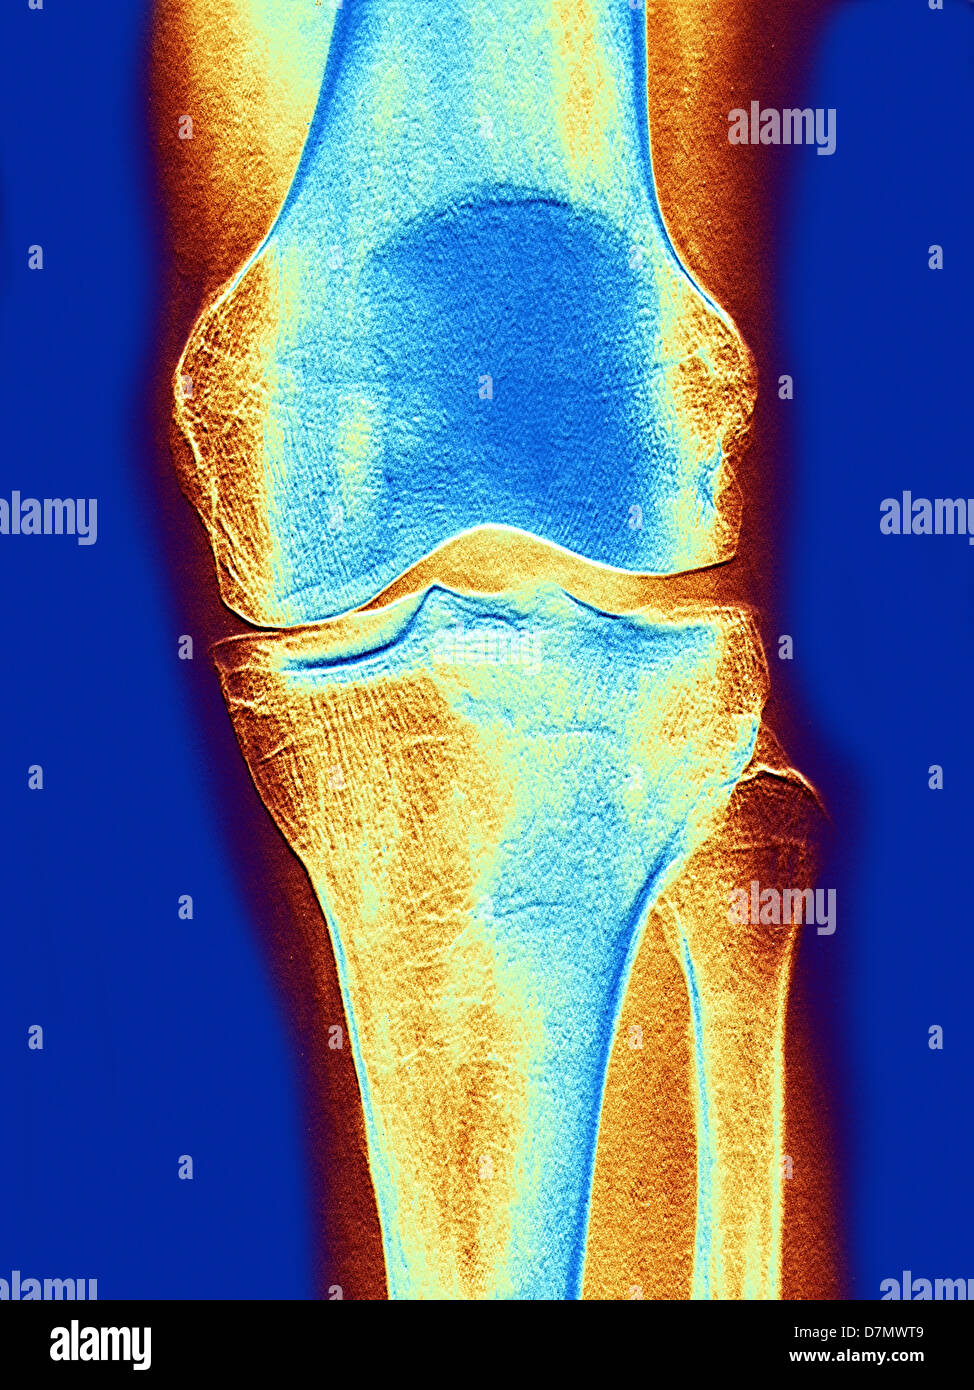 Knee joint, x-ray - Stock Image